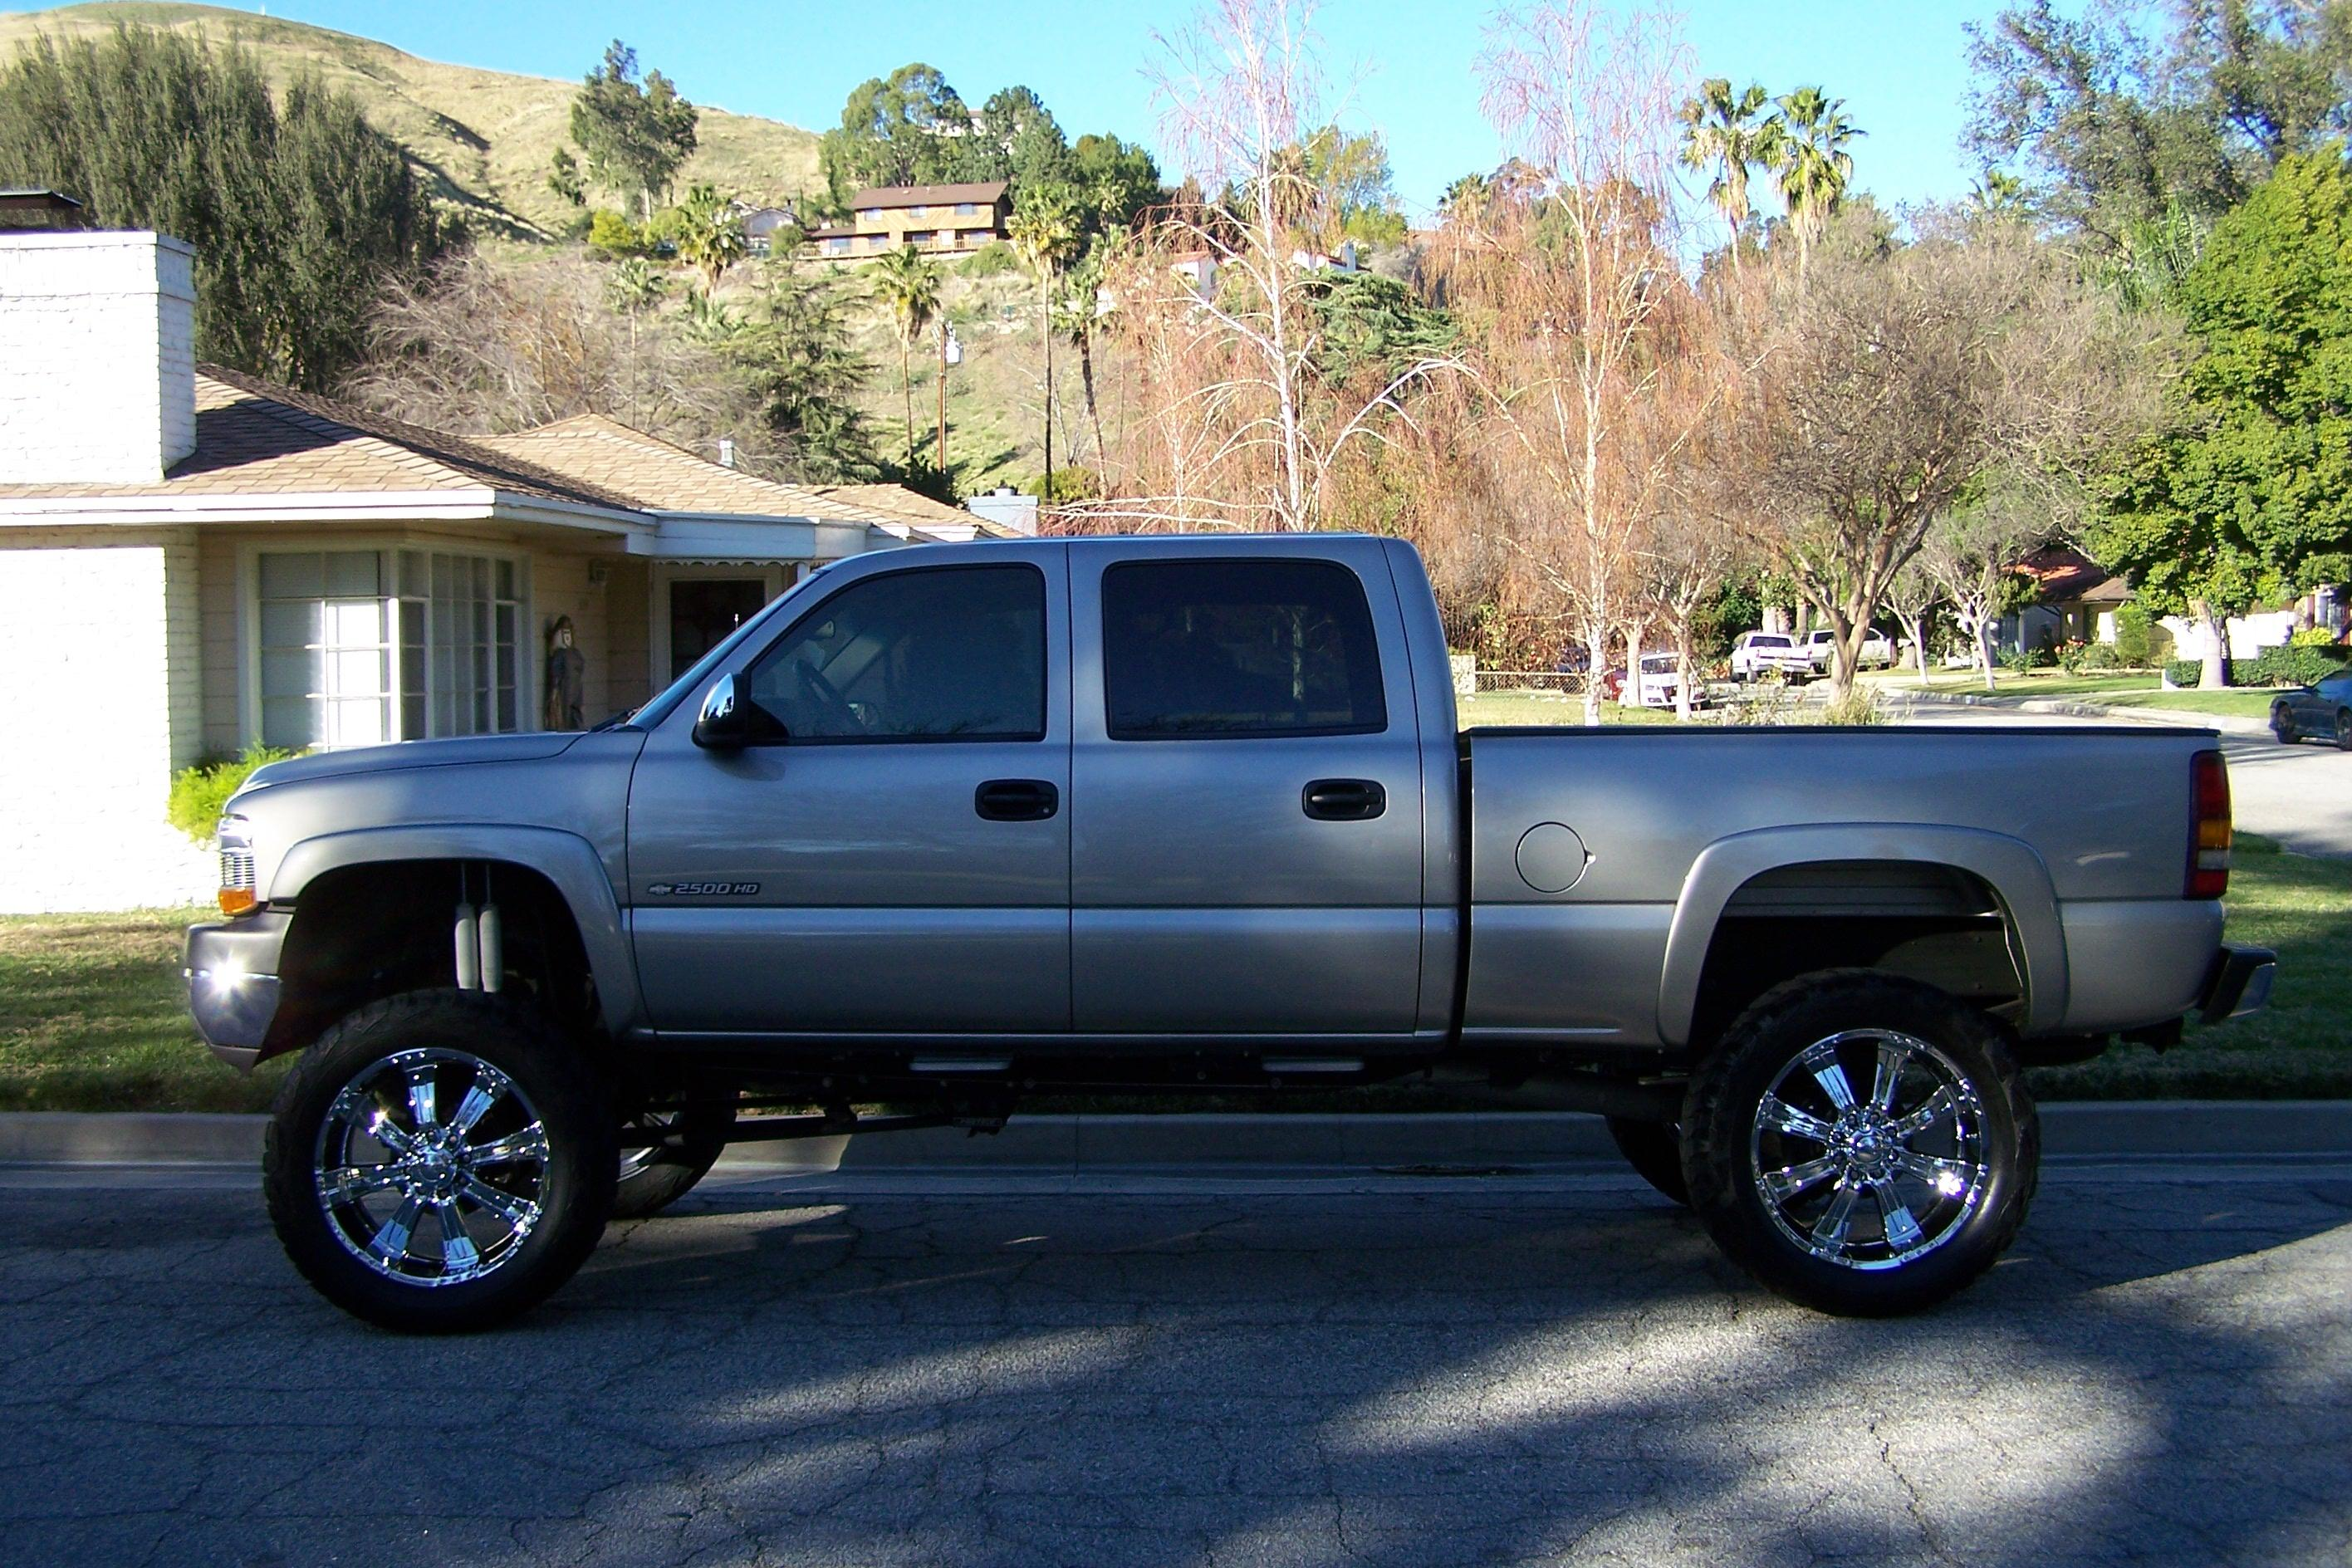 vvargas 2002 chevrolet silverado 2500 hd crew cabshort bed specs photos modification info at. Black Bedroom Furniture Sets. Home Design Ideas